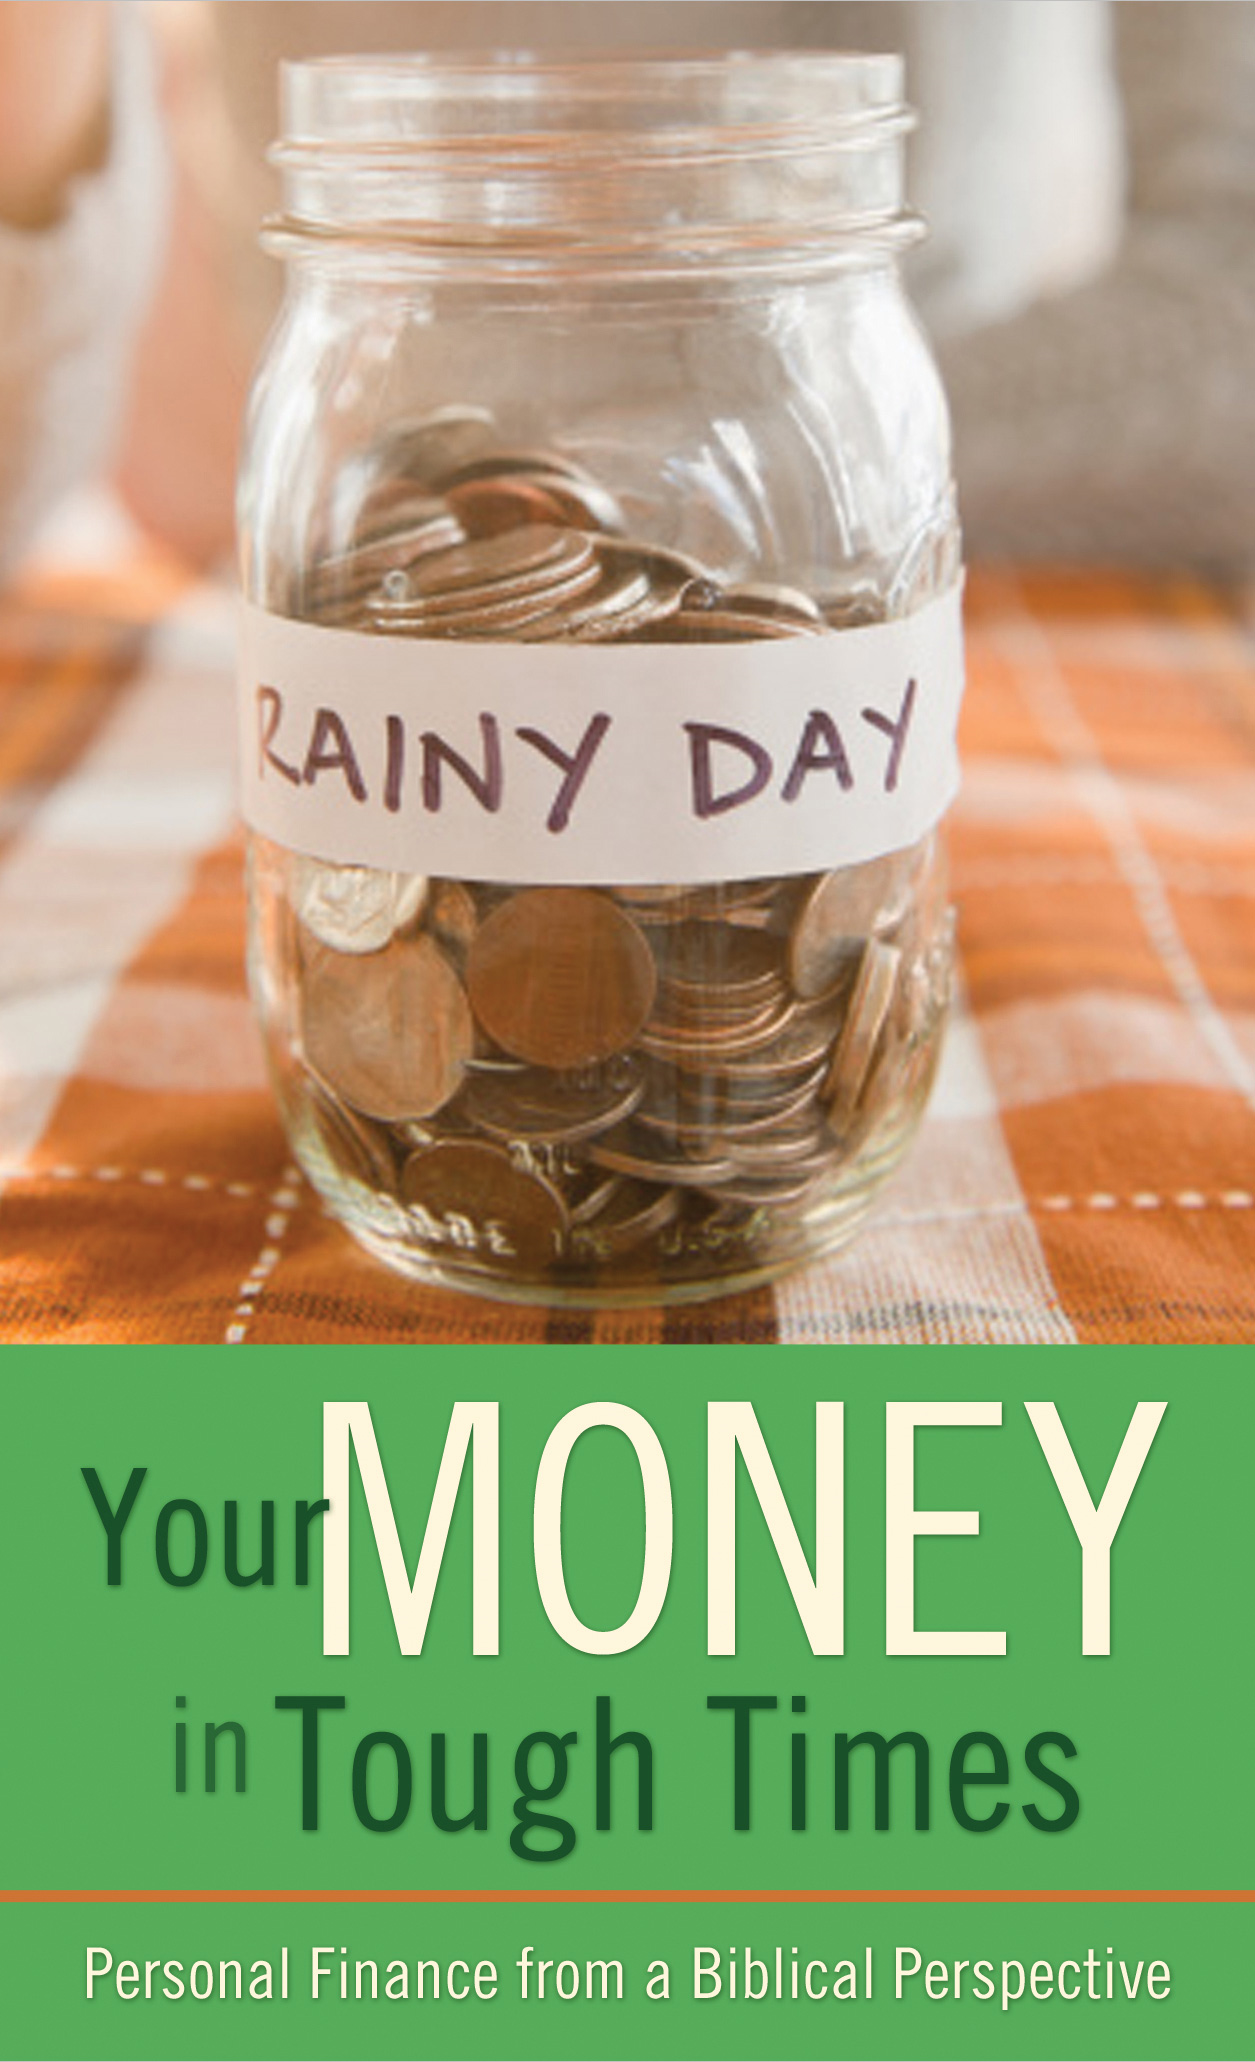 Your Money in Tough Times: Personal Finance from a Biblical Perspective By: Mahlon L. Hetrick